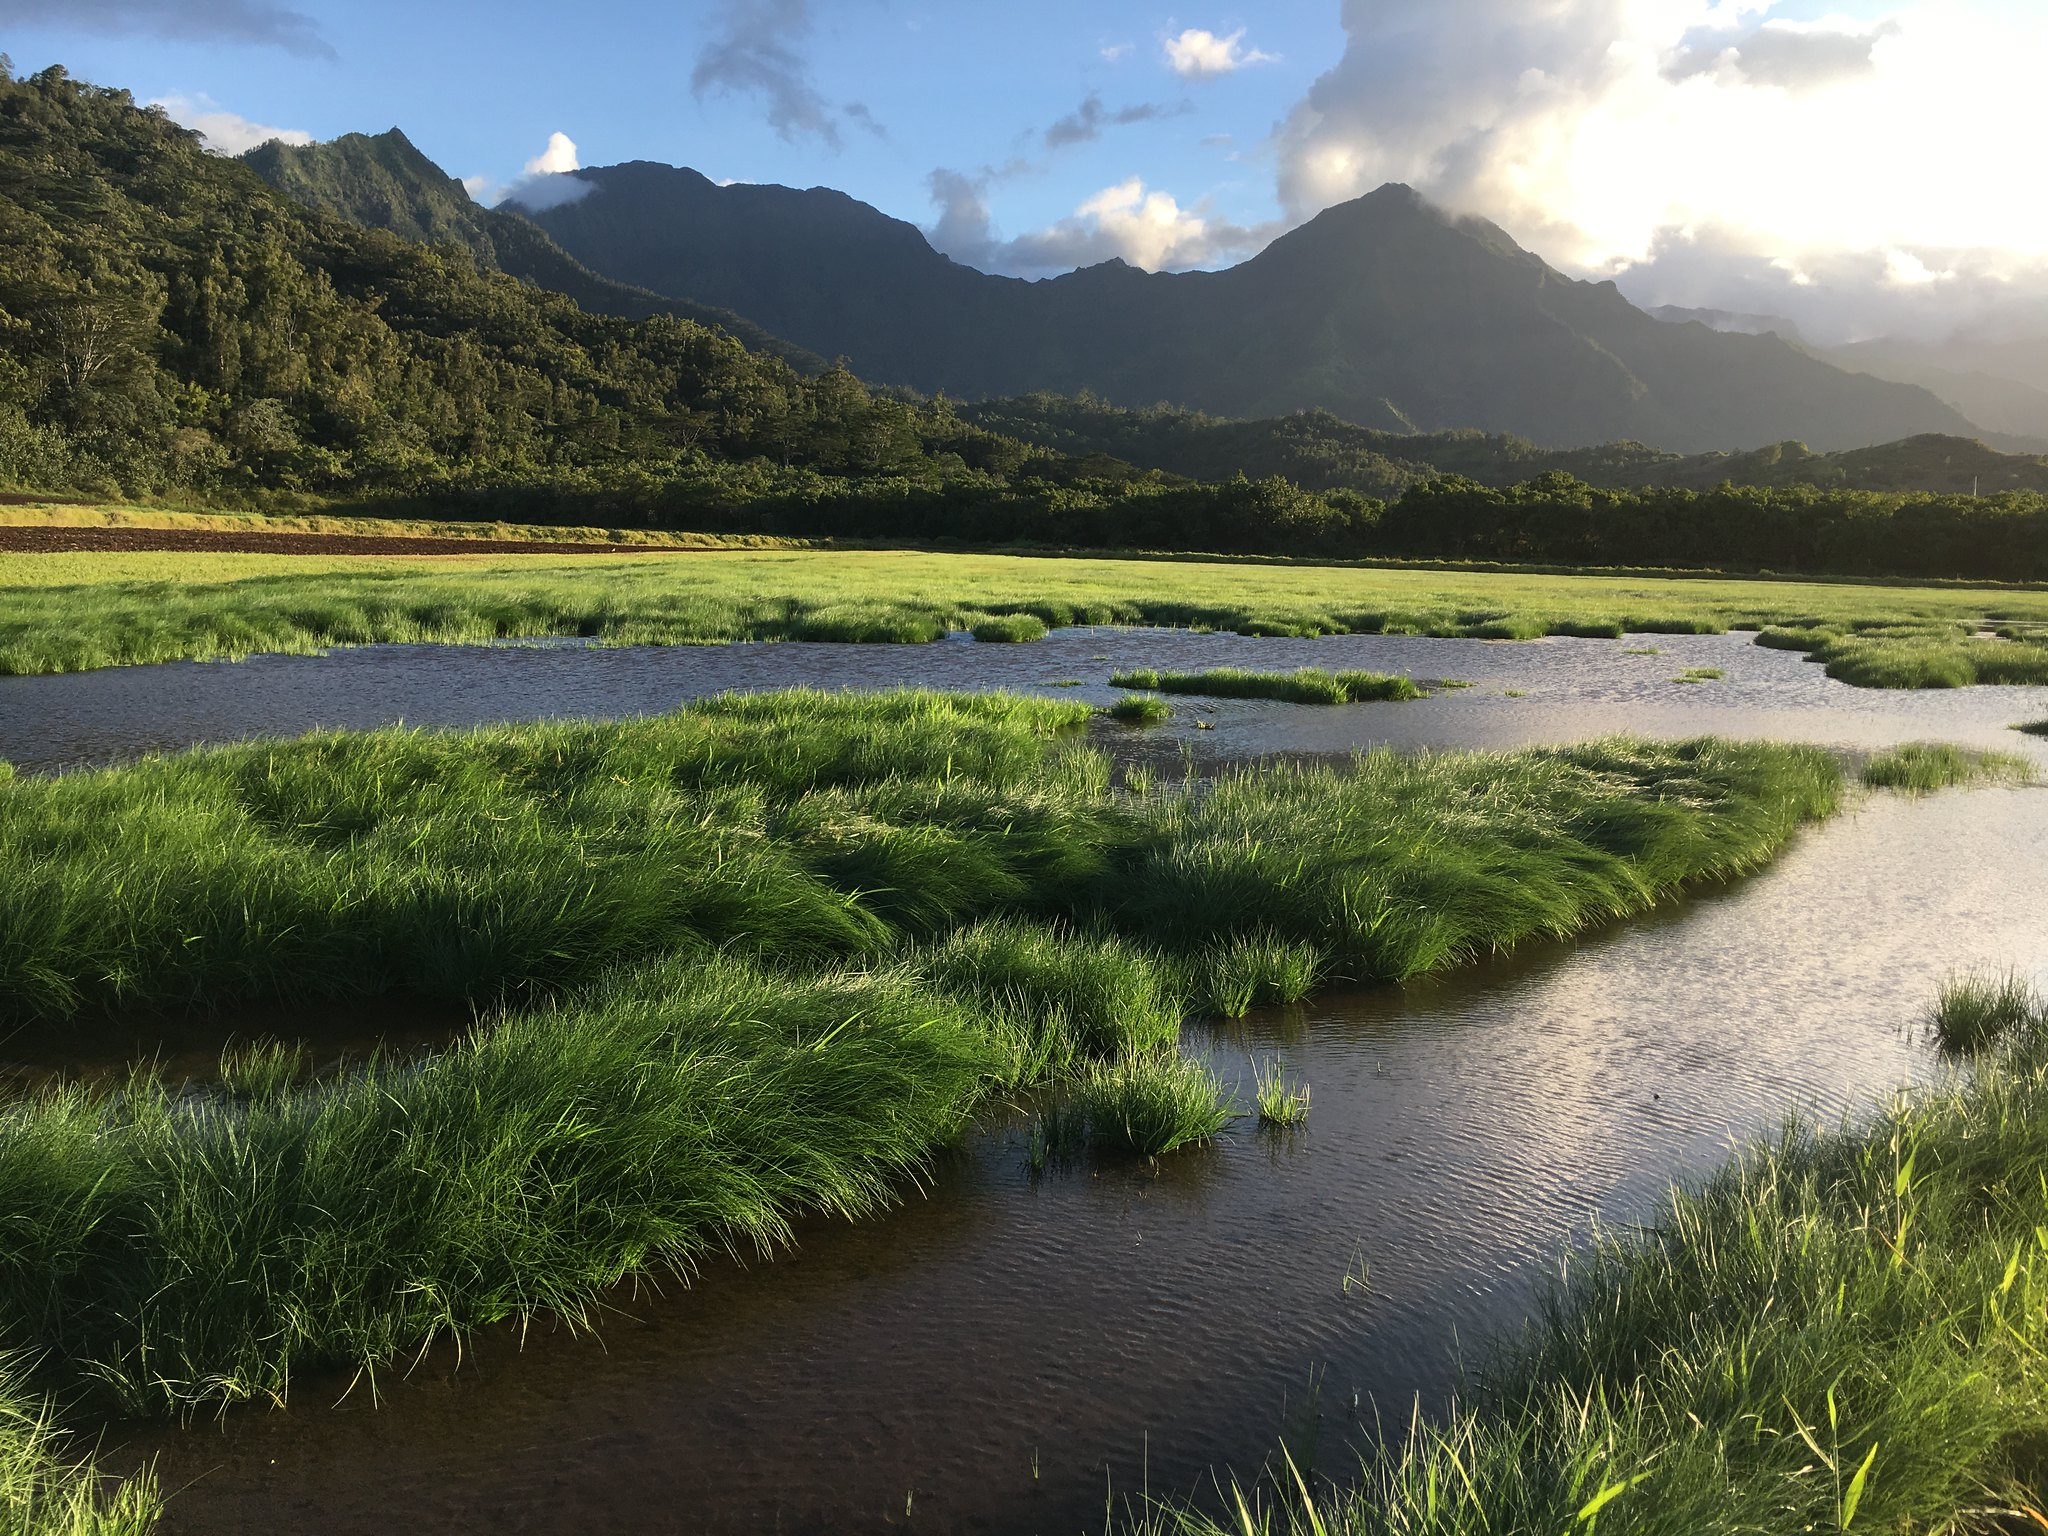 Healthy watersheds and wetands are critical to Hawaiʻi's resident endangered waterbirds, as well as many migratory species. <br> J. Waipa / U.S. Fish and Wildlife Service